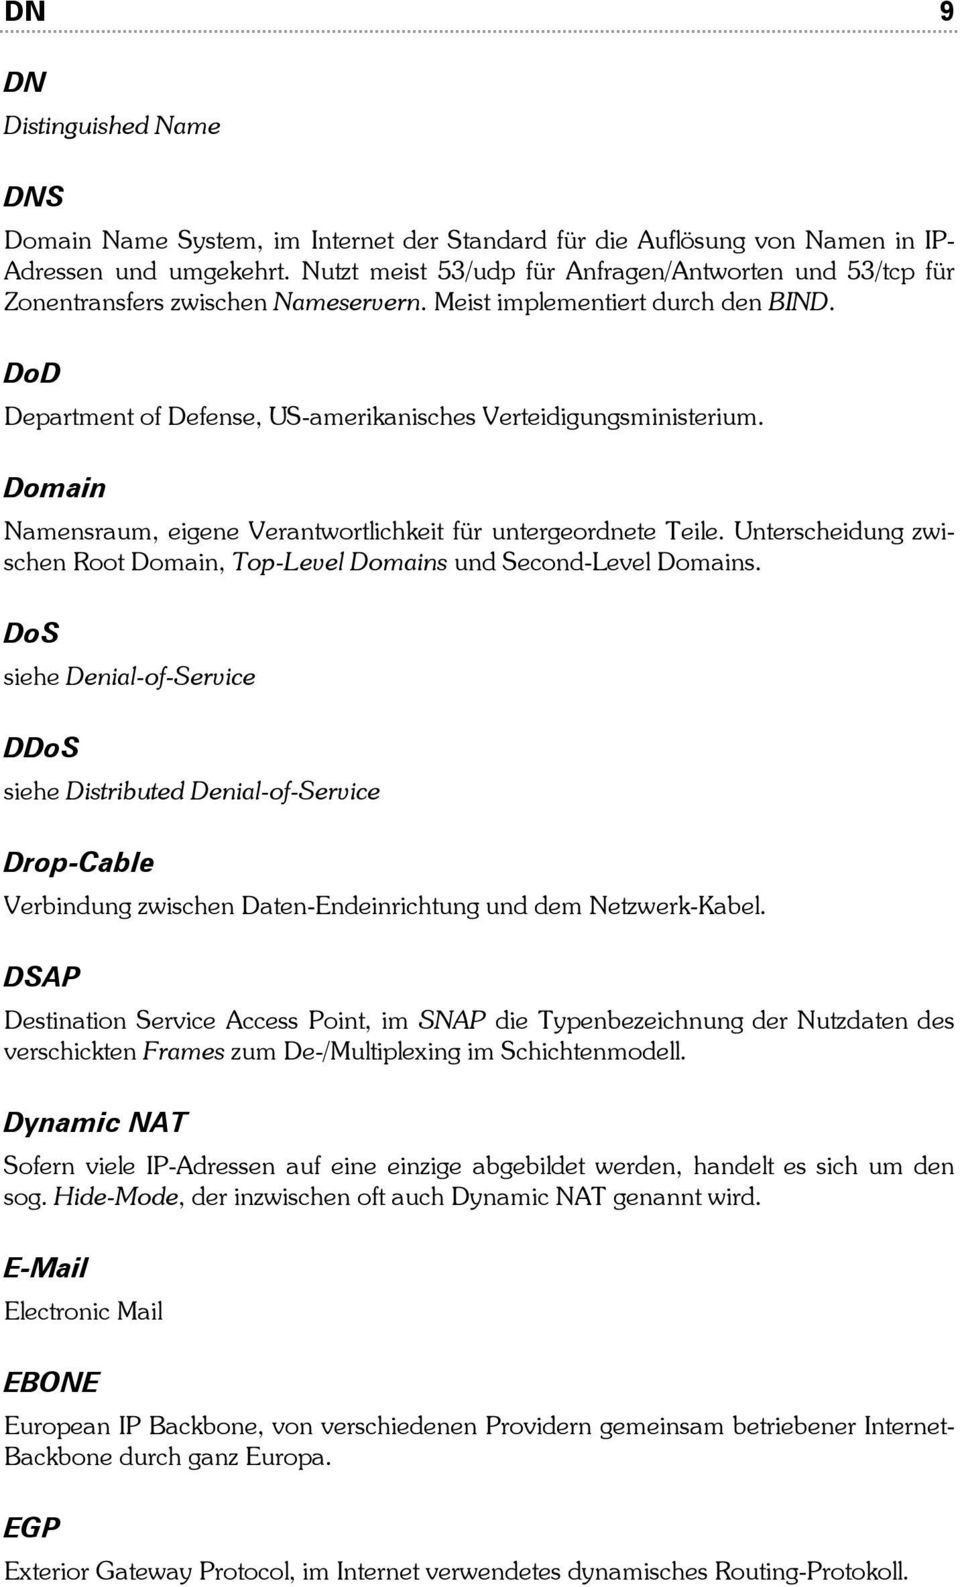 Domain Namensraum, eigene Verantwortlichkeit für untergeordnete Teile. Unterscheidung zwischen Root Domain, Top-Level Domains und Second-Level Domains.